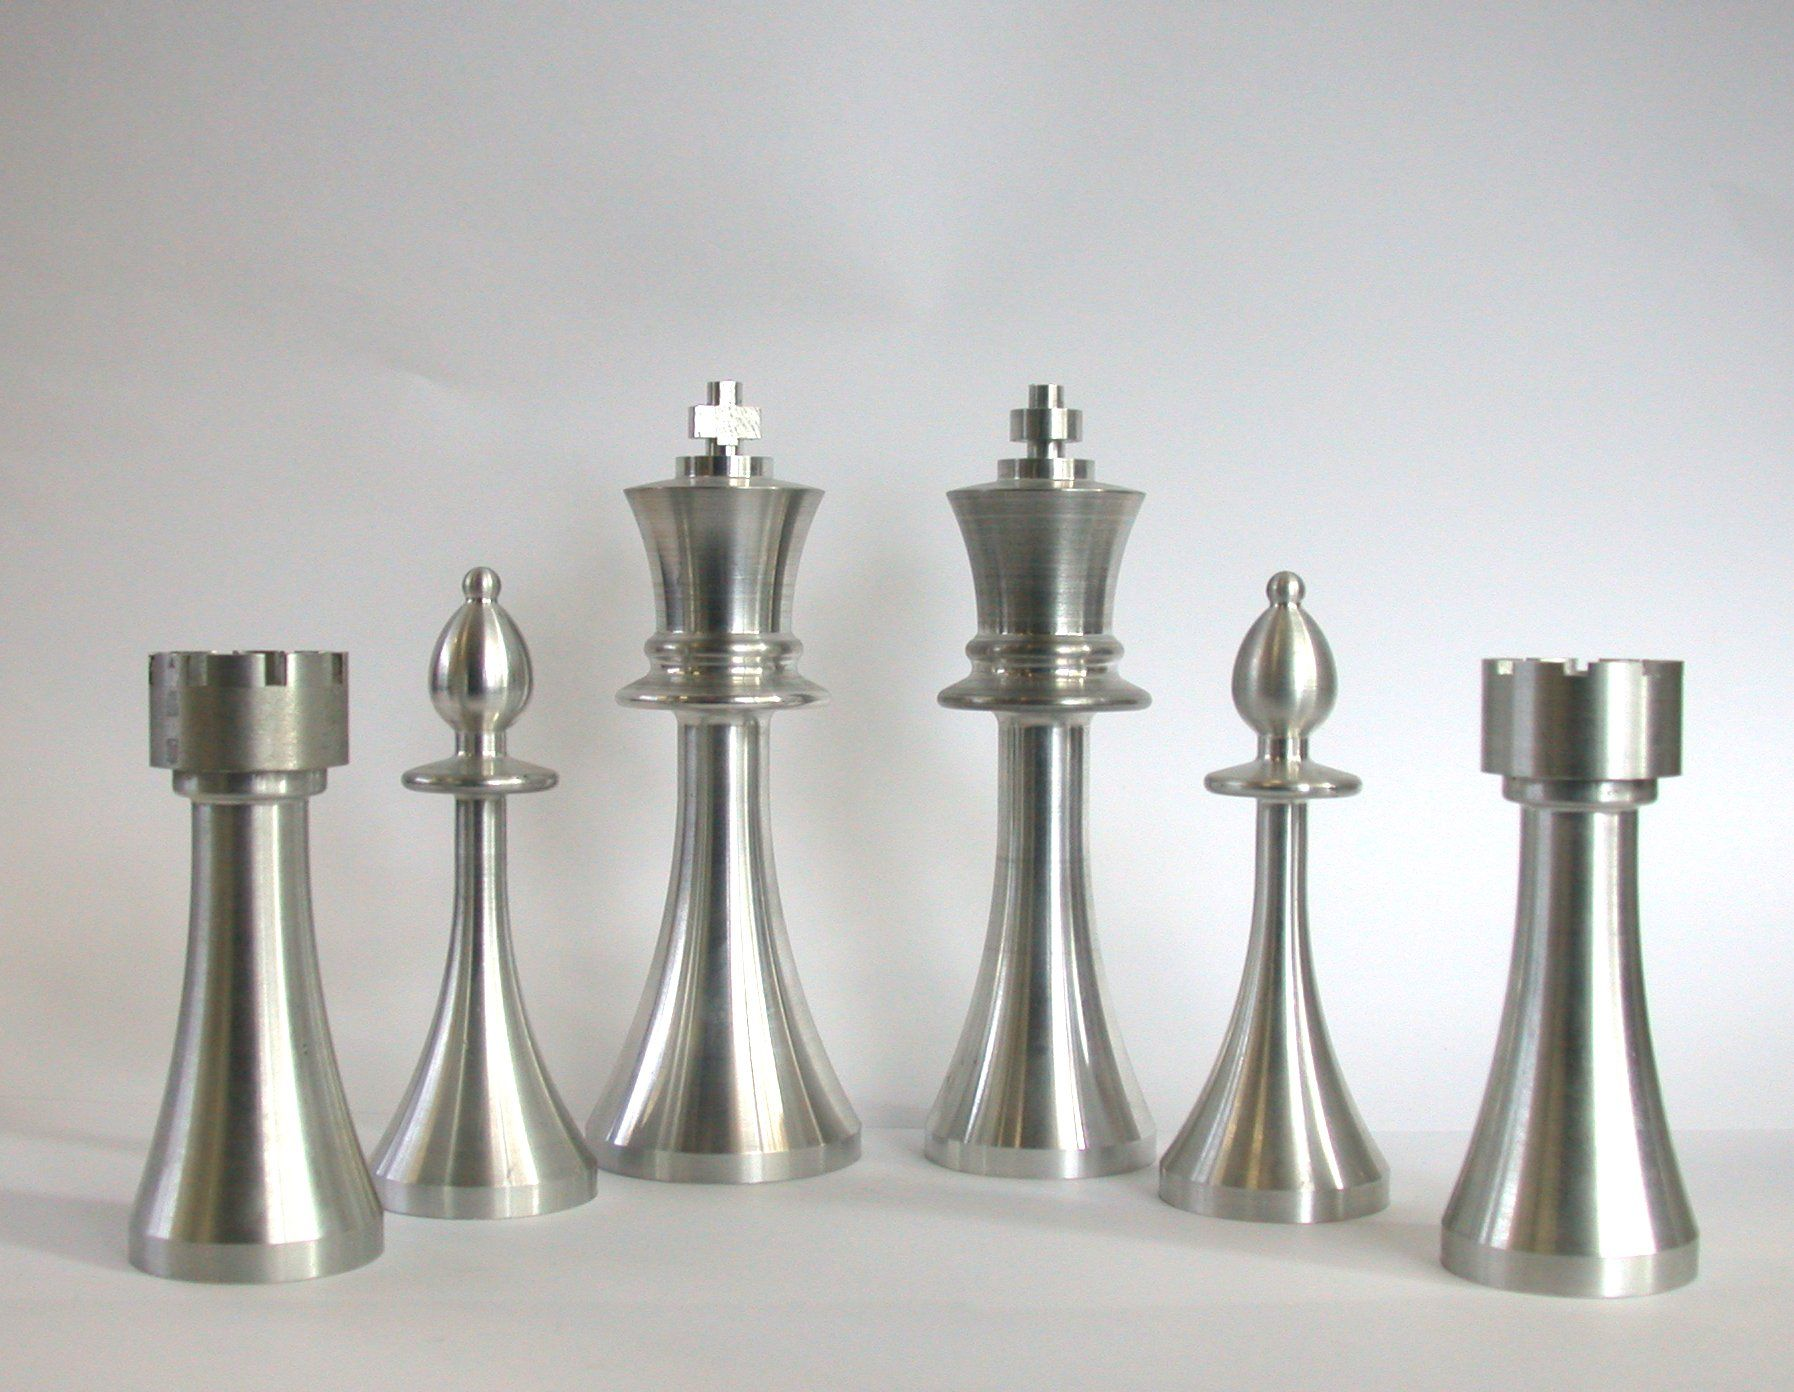 projects ideas metal chess pieces. Metal projects Google Image Result for http www personal psu edu mlr5095 images